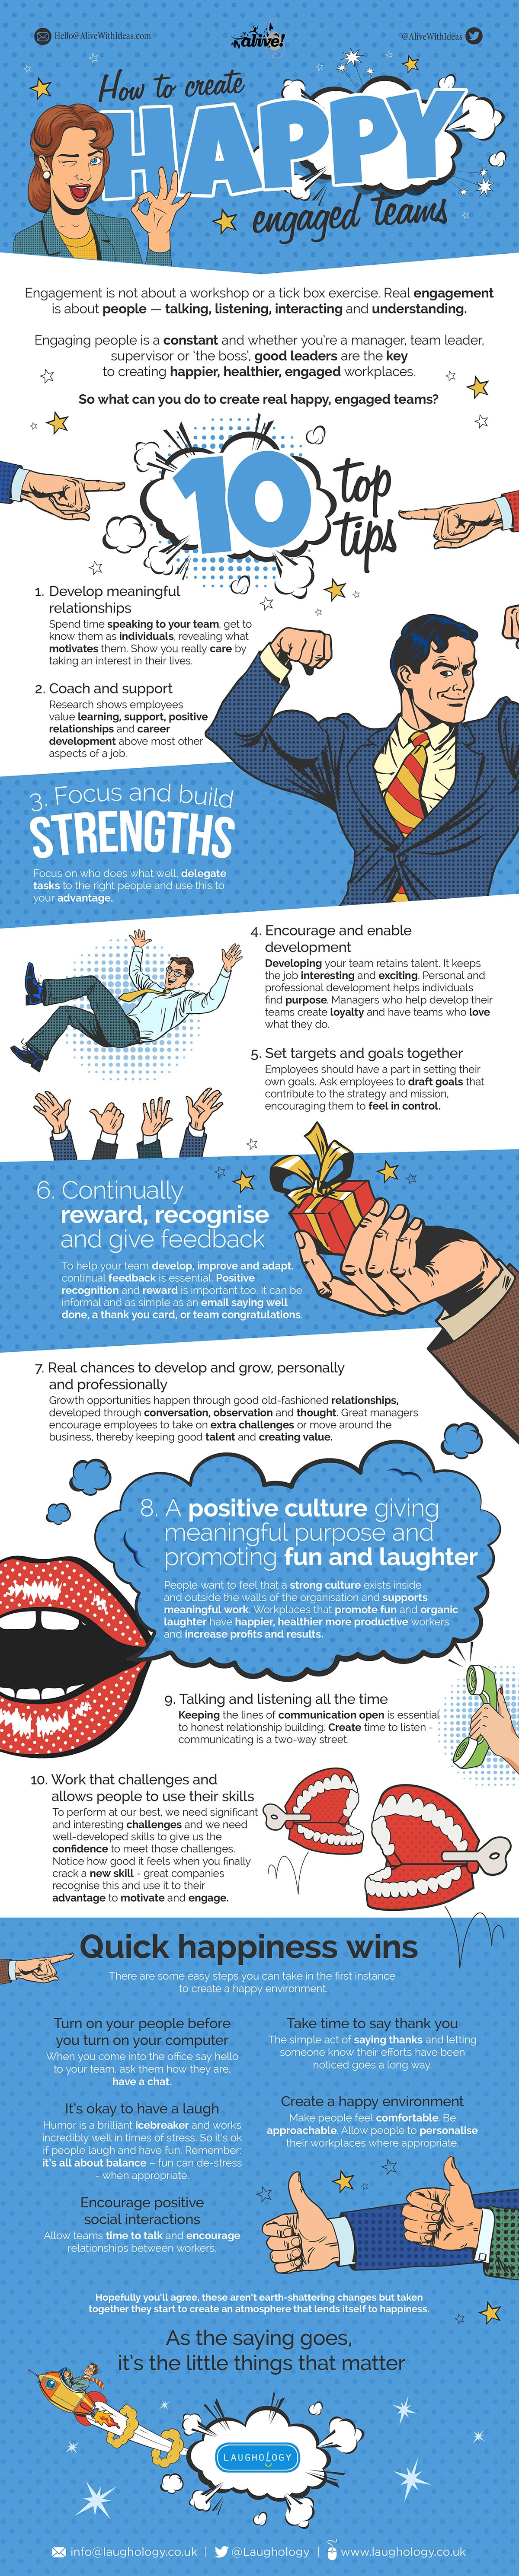 How to Create Engaged, Happy Teams